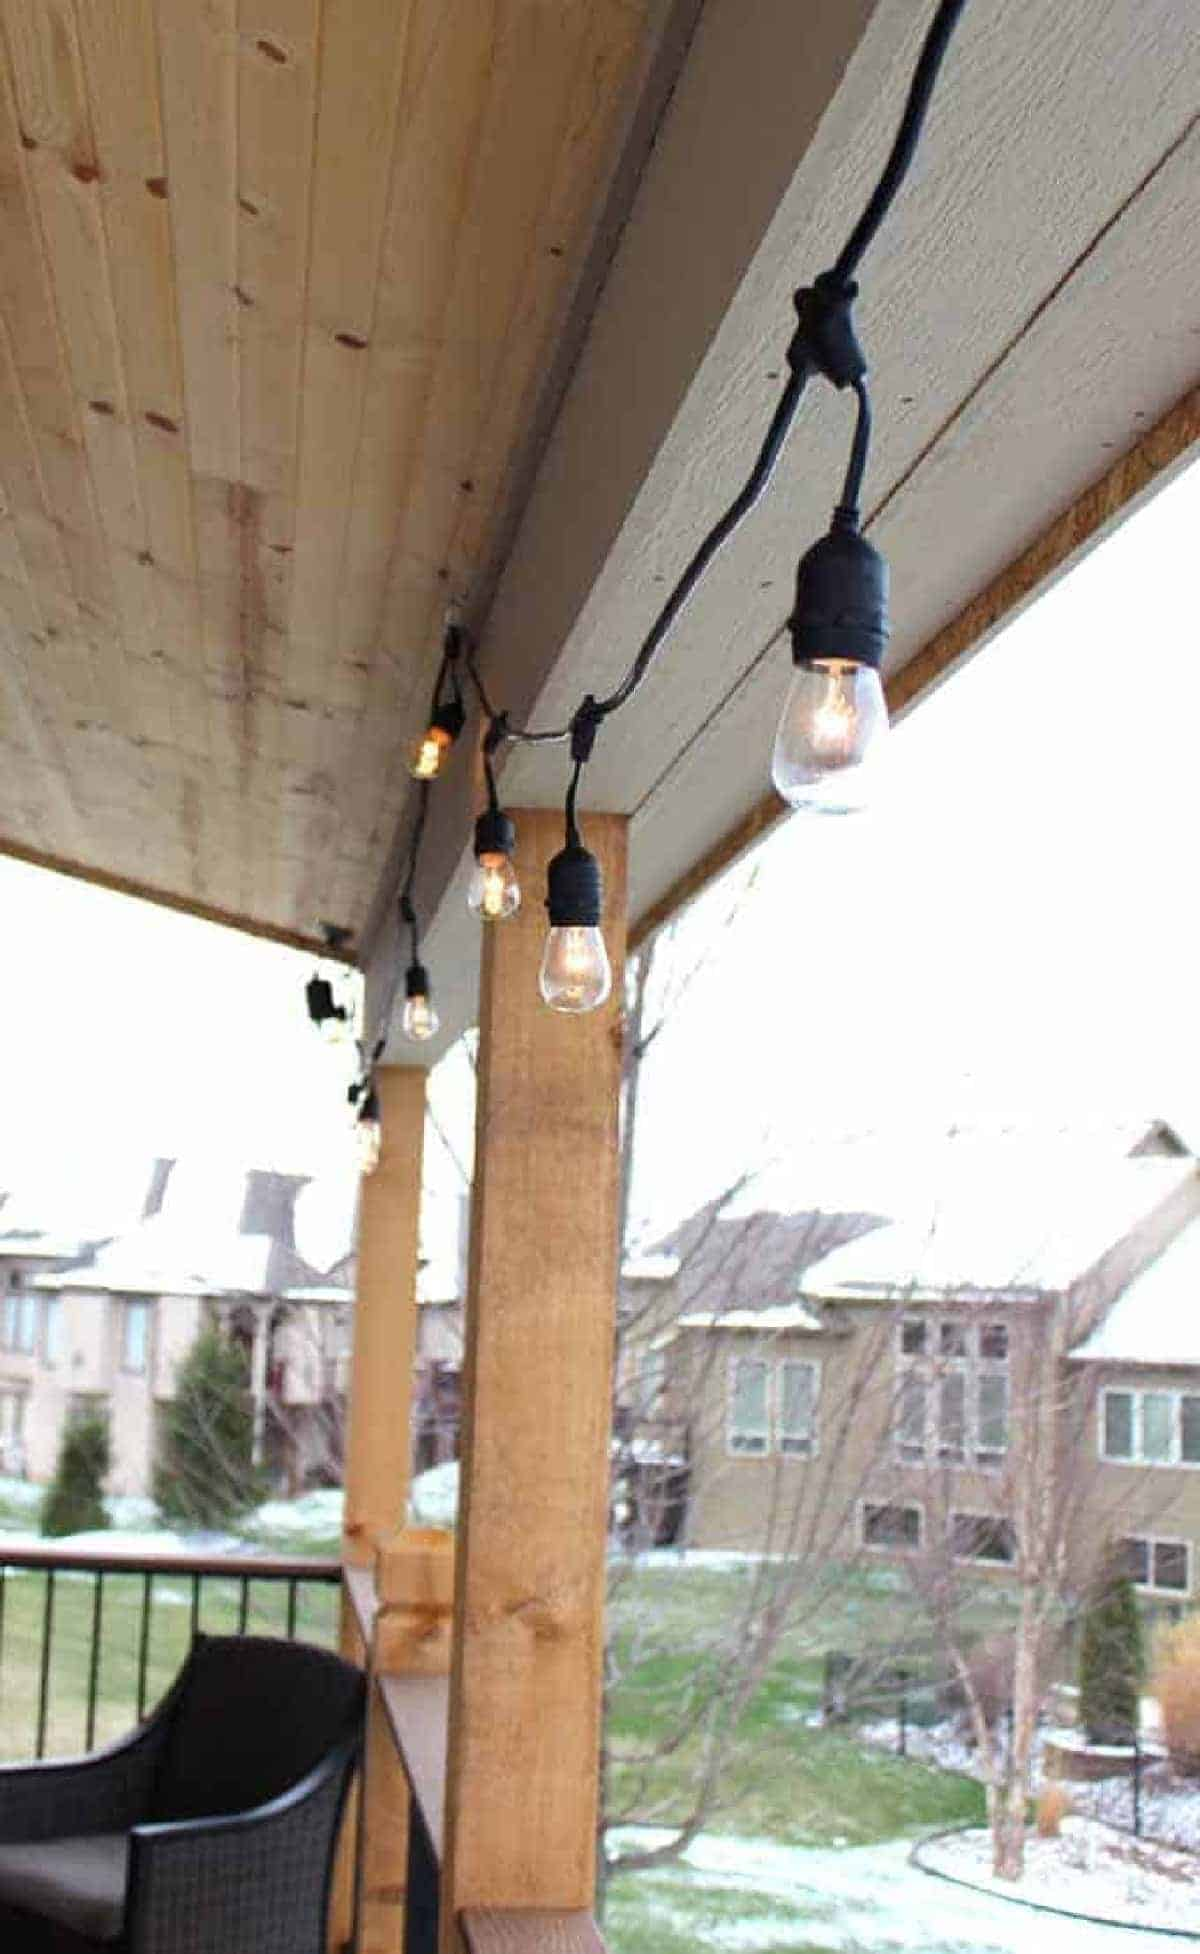 Outdoor string lights on deck during winter months.